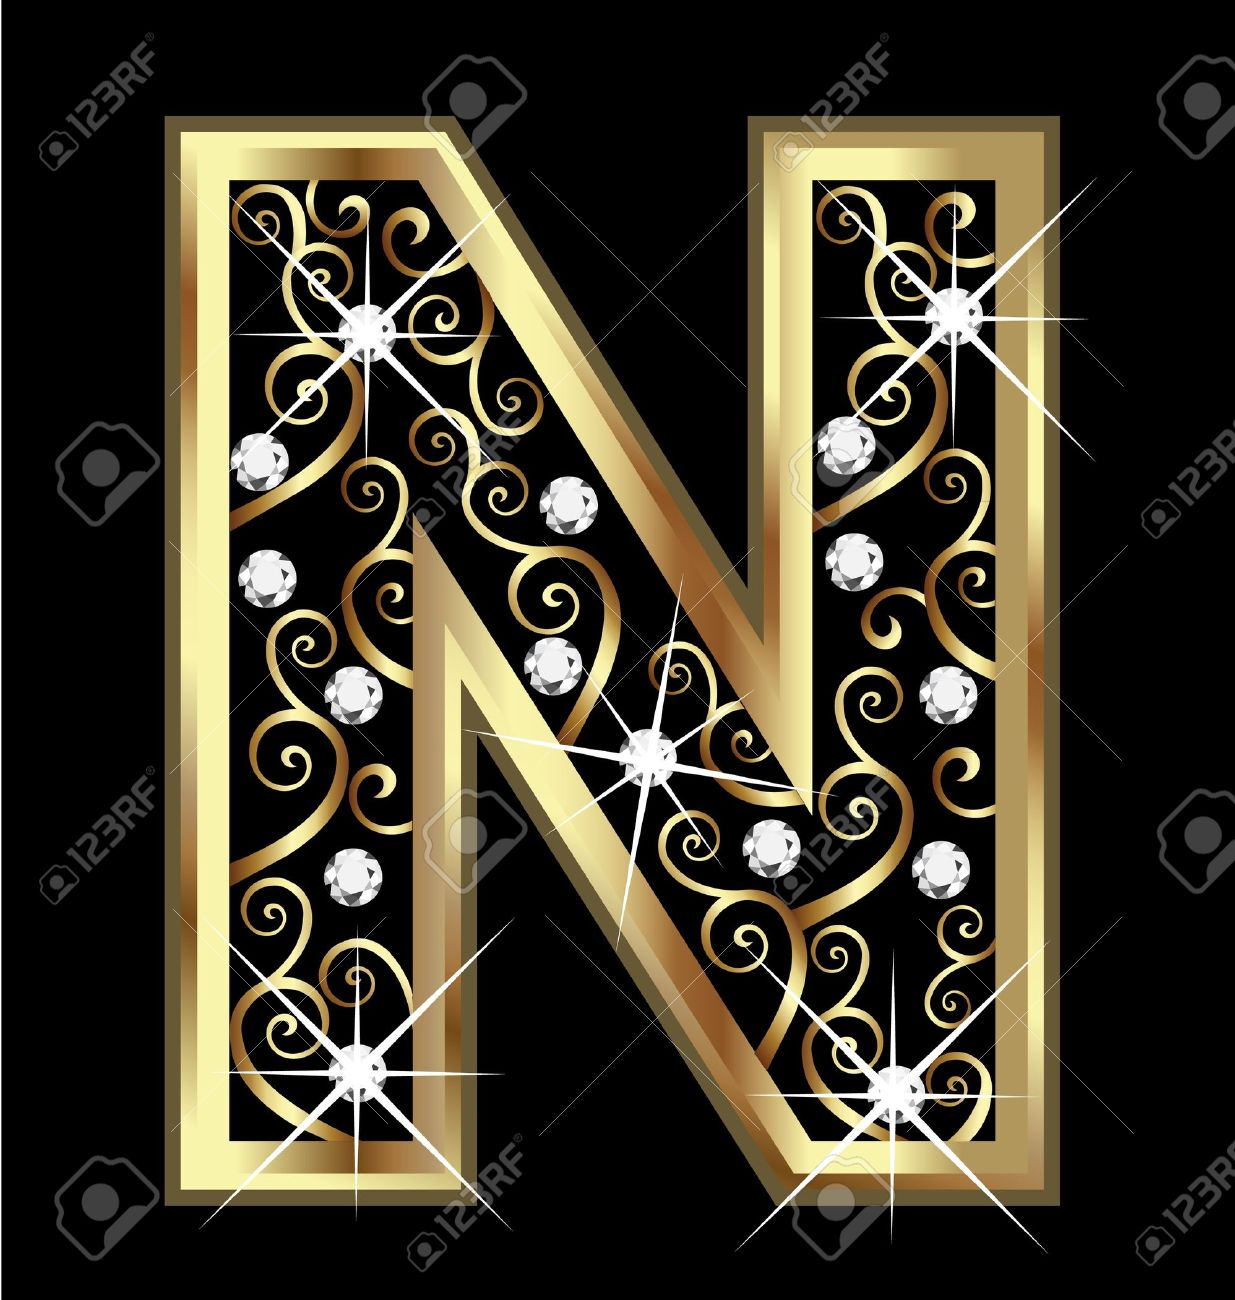 hight resolution of n gold letter with swirly ornaments stock vector 16320514